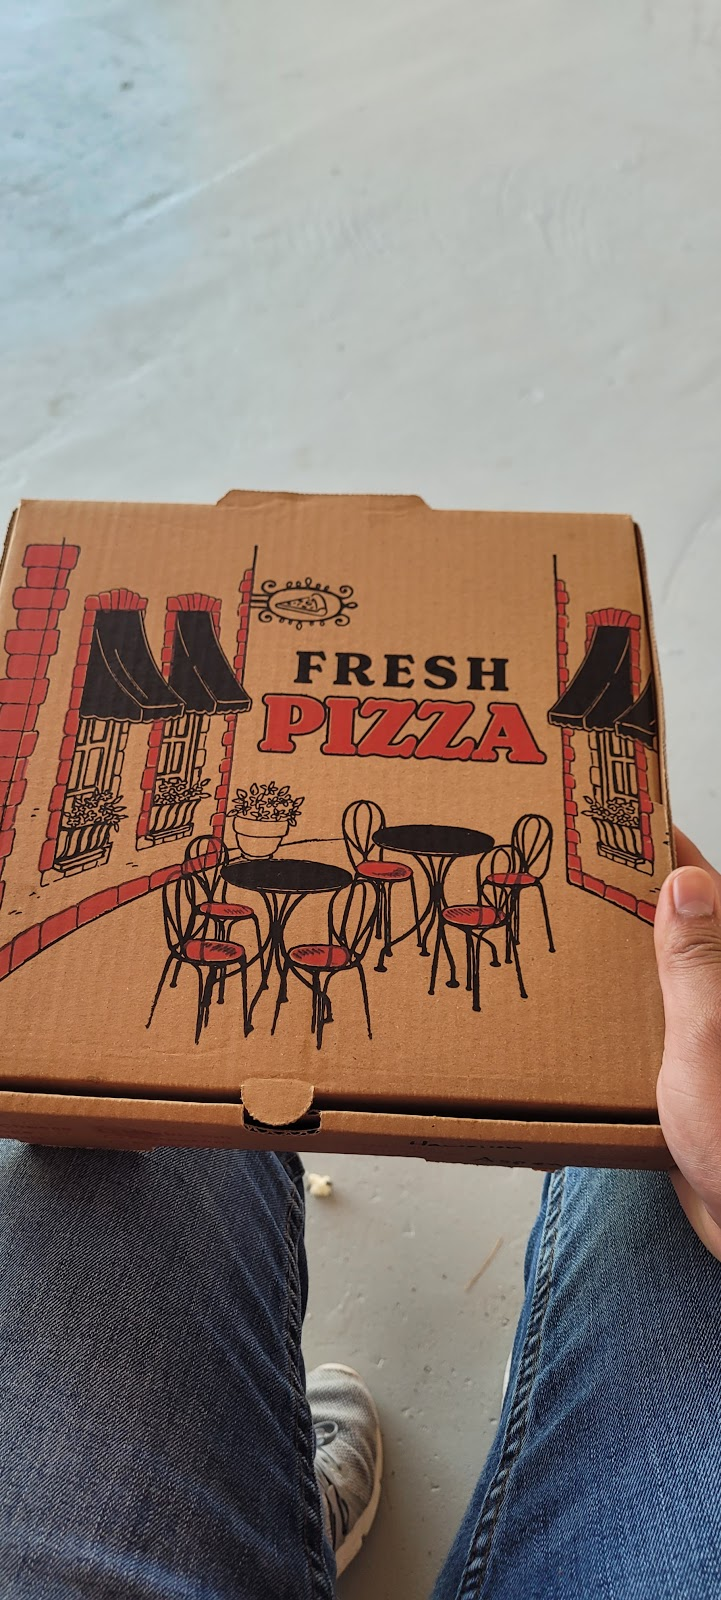 Industrial Park Pizza   restaurant   1000 Industrial Dr, Berryville, AR 72616, USA   8706544570 OR +1 870-654-4570